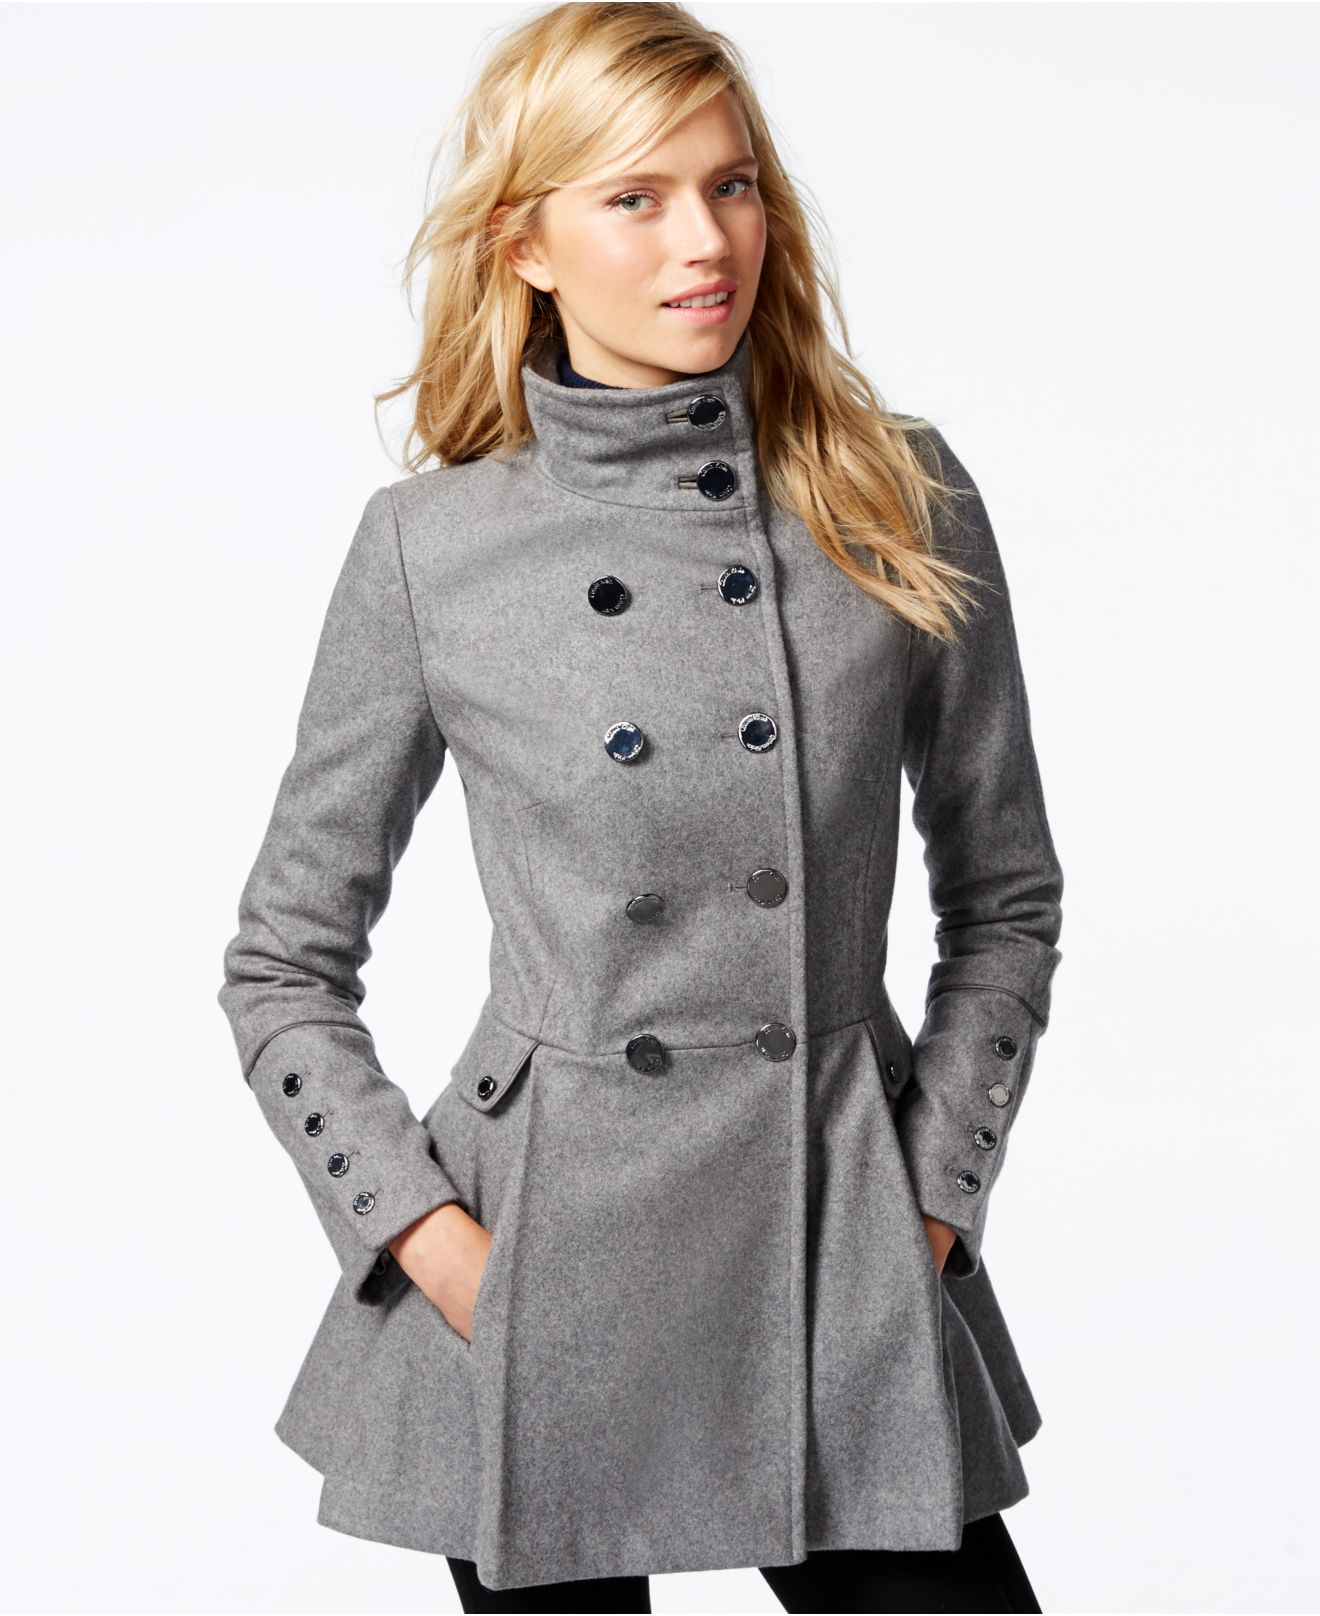 You've searched for Women's Jackets & Coats! Etsy has thousands of unique options to choose from, like handmade goods, vintage finds, and one-of-a-kind gifts. Our global marketplace of sellers can help you find extraordinary items at any price range.